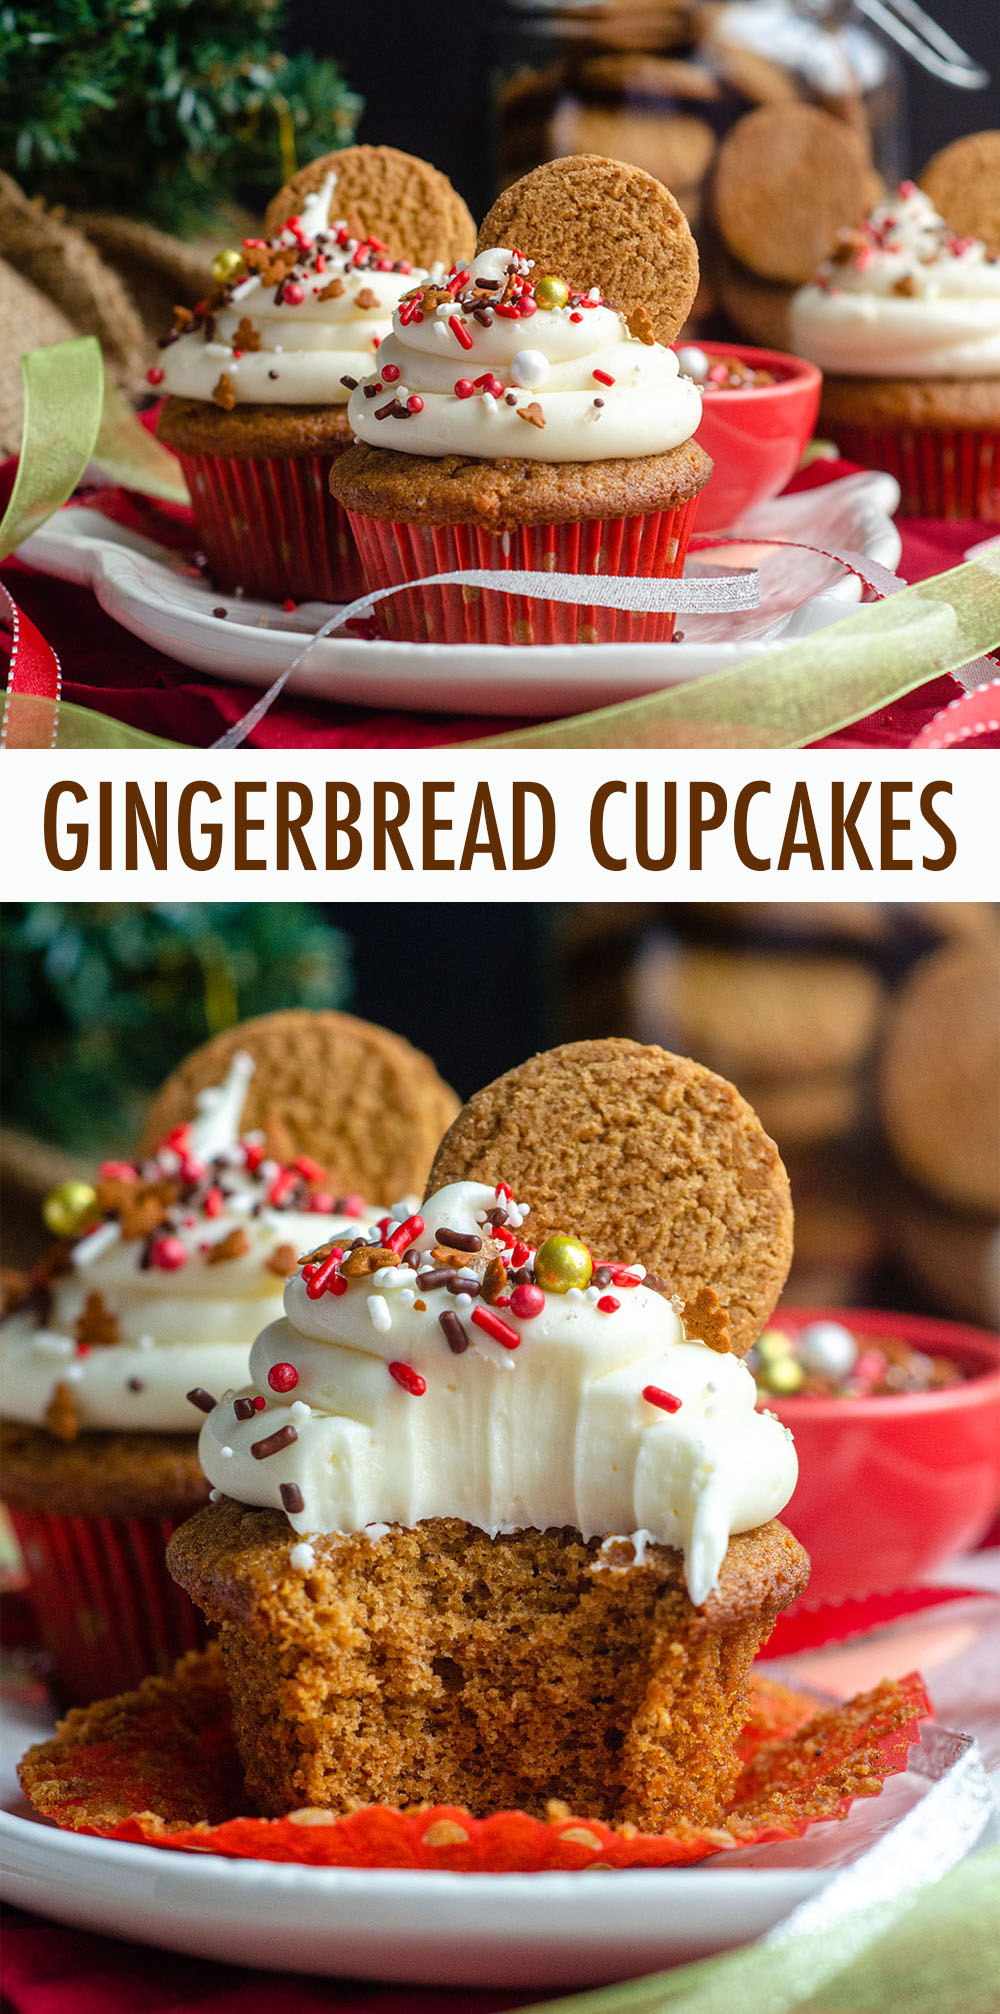 Sweet and spicy cupcakes full of all of your favorite gingerbread flavors and topped with a tangy cream cheese frosting.